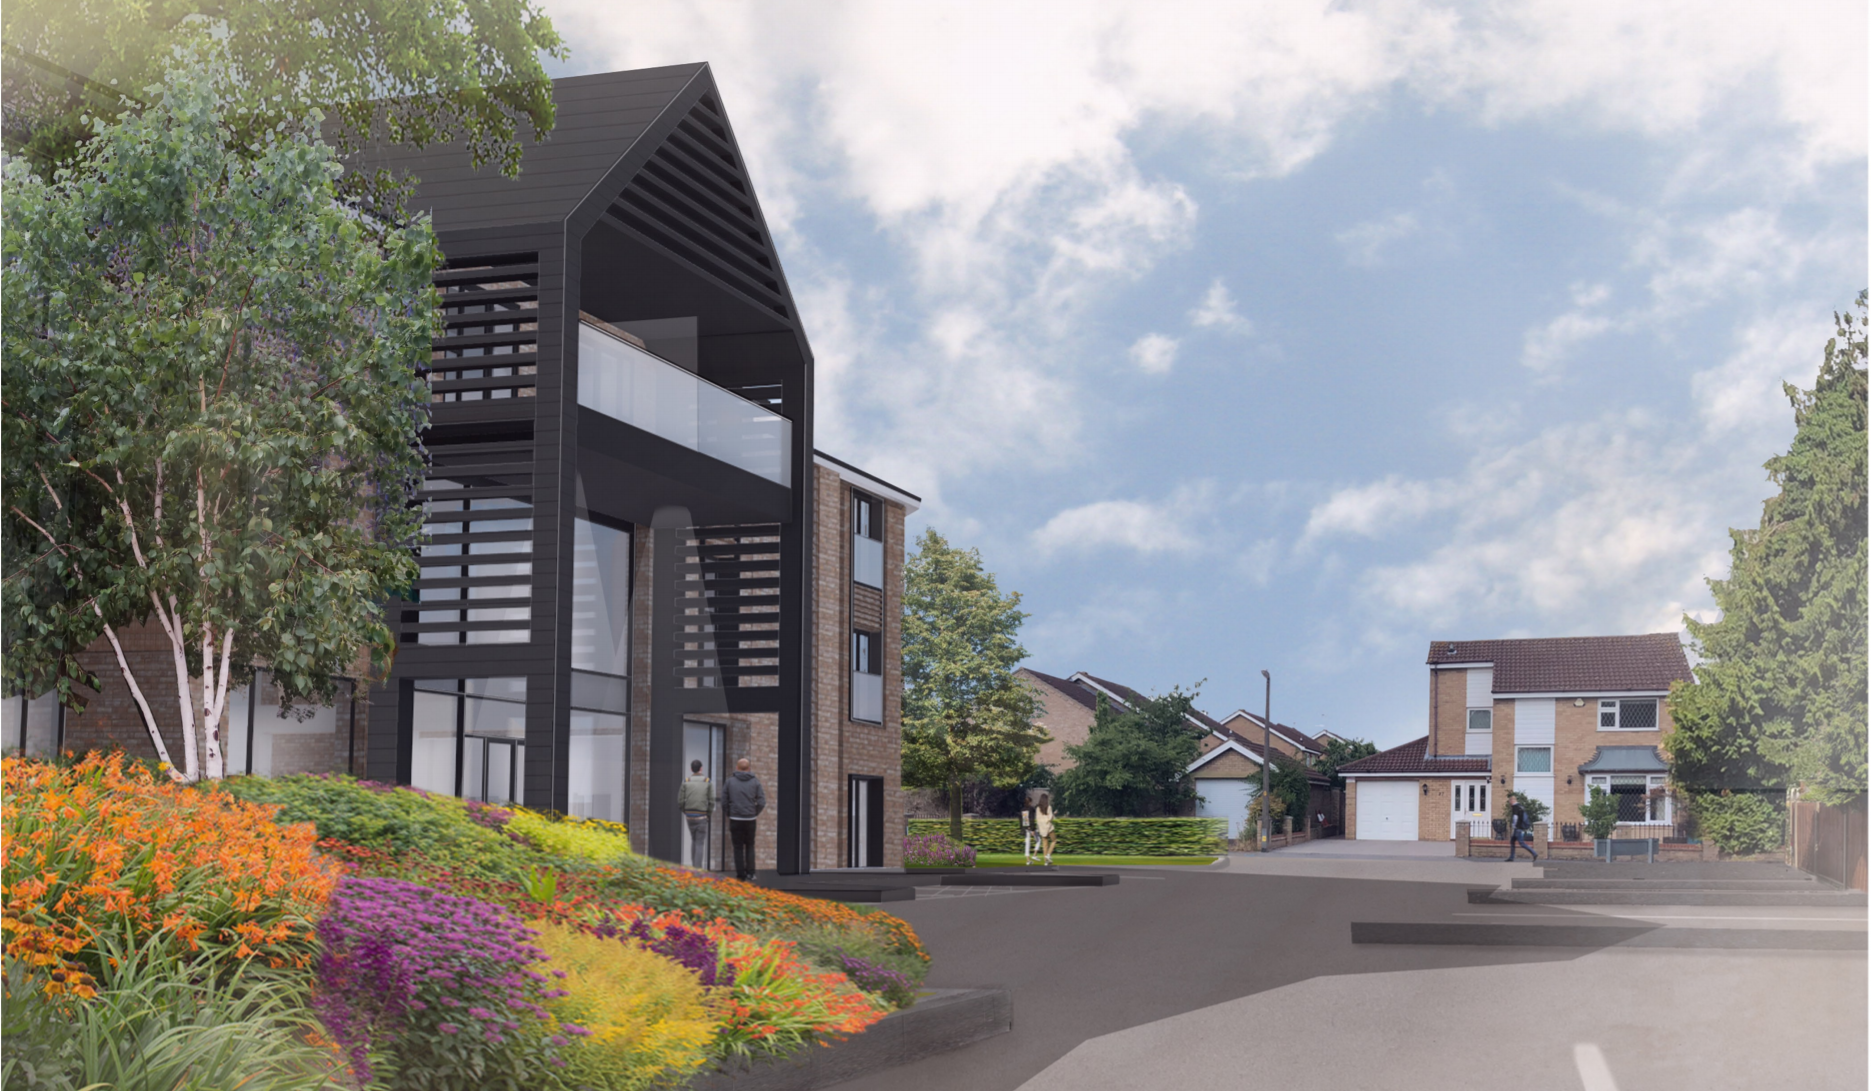 An artists impression of the development site which features a glass front to the property and modern architecture.